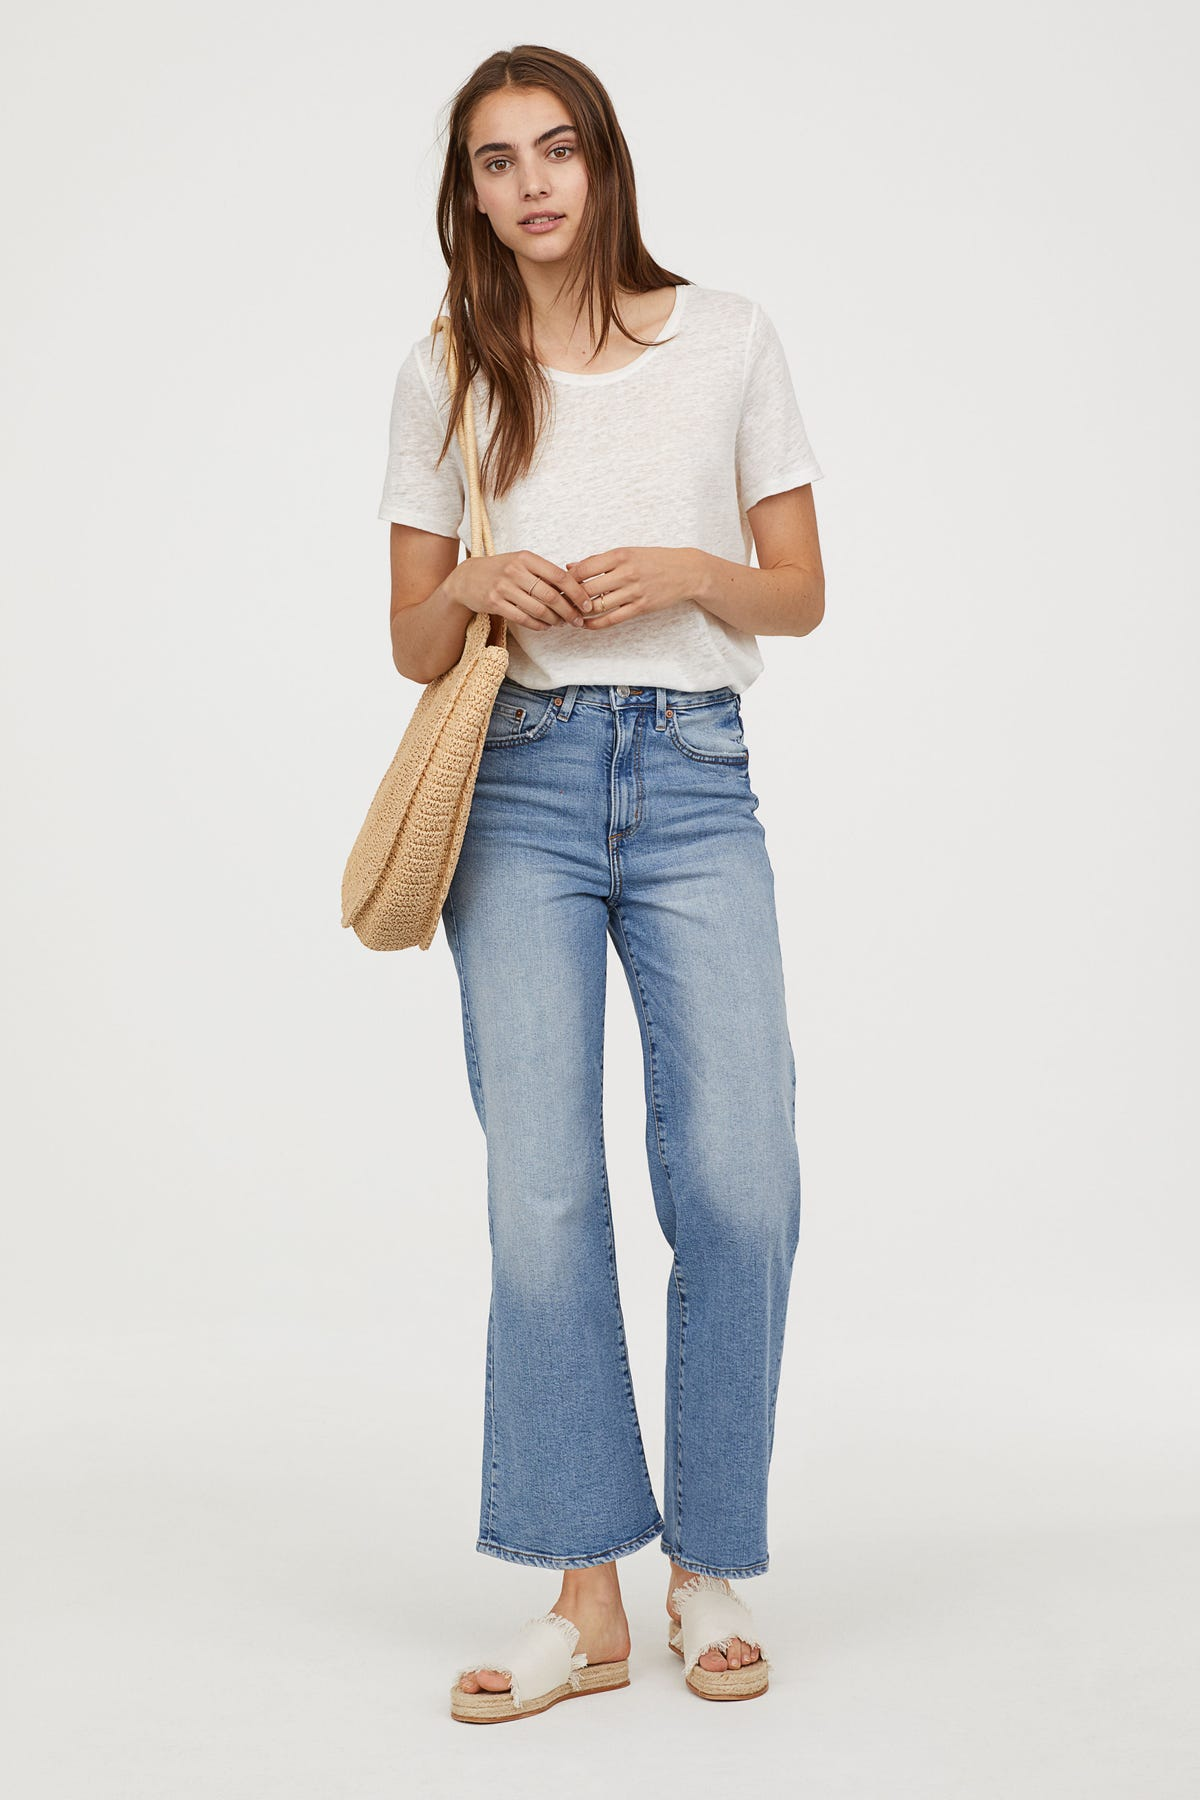 8f4dd3205cf Best Cropped Flare Jeans - Fashion Trend 2018